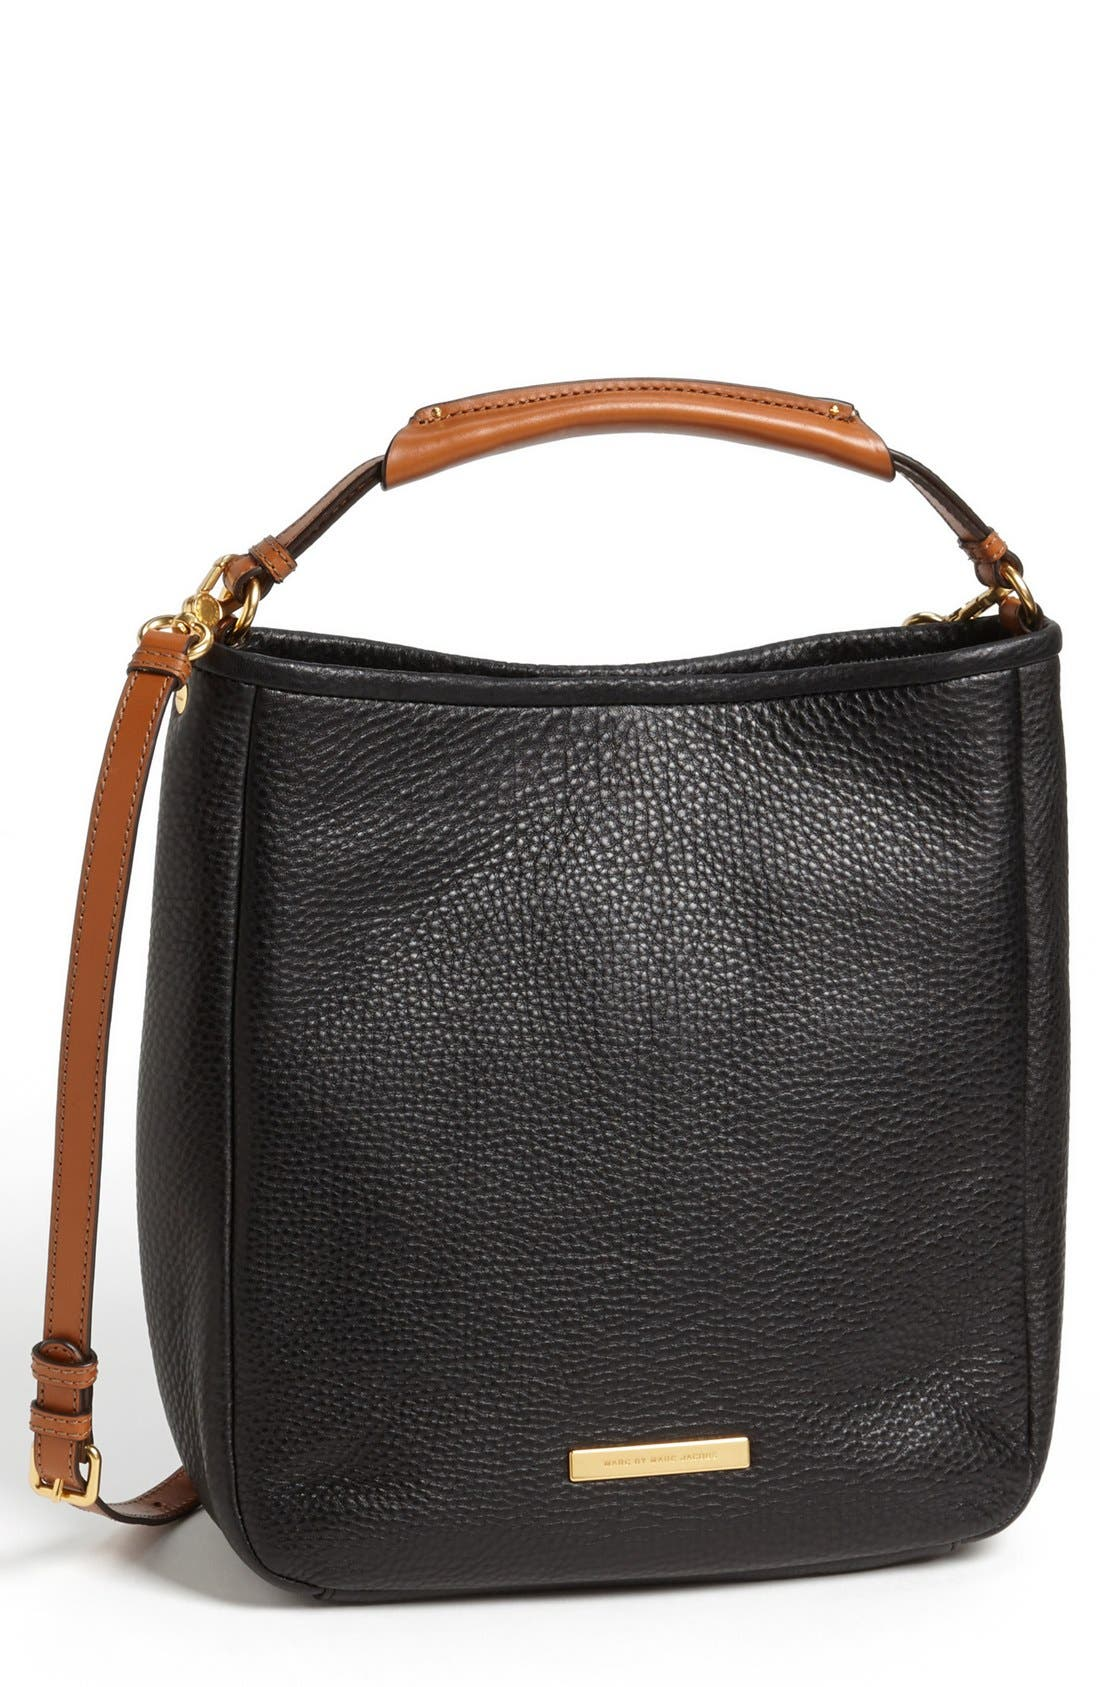 Main Image - MARC BY MARC JACOBS 'Large Softy Saddle' Leather Hobo